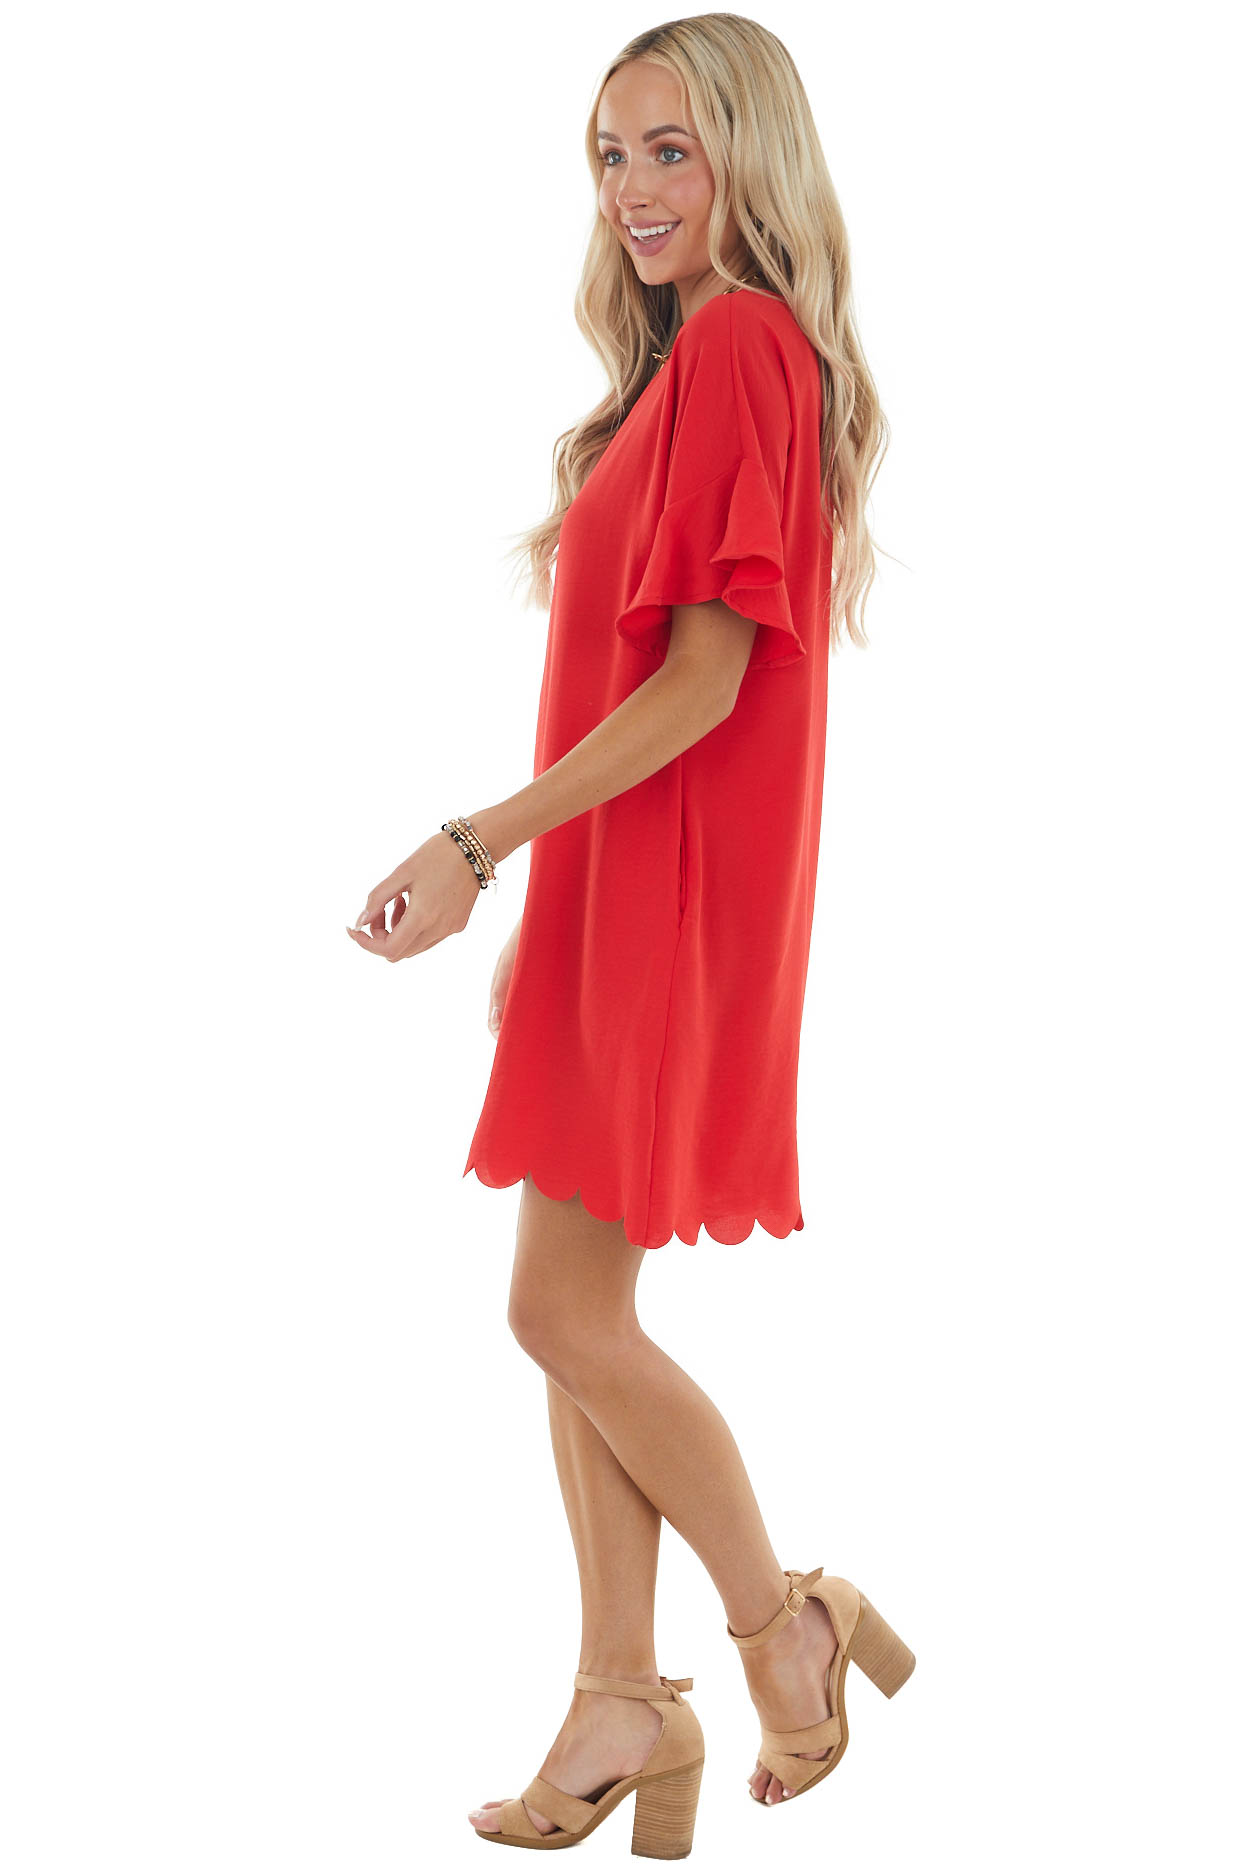 Lipstick Red Short Dress with Scalloped Hem and Pockets